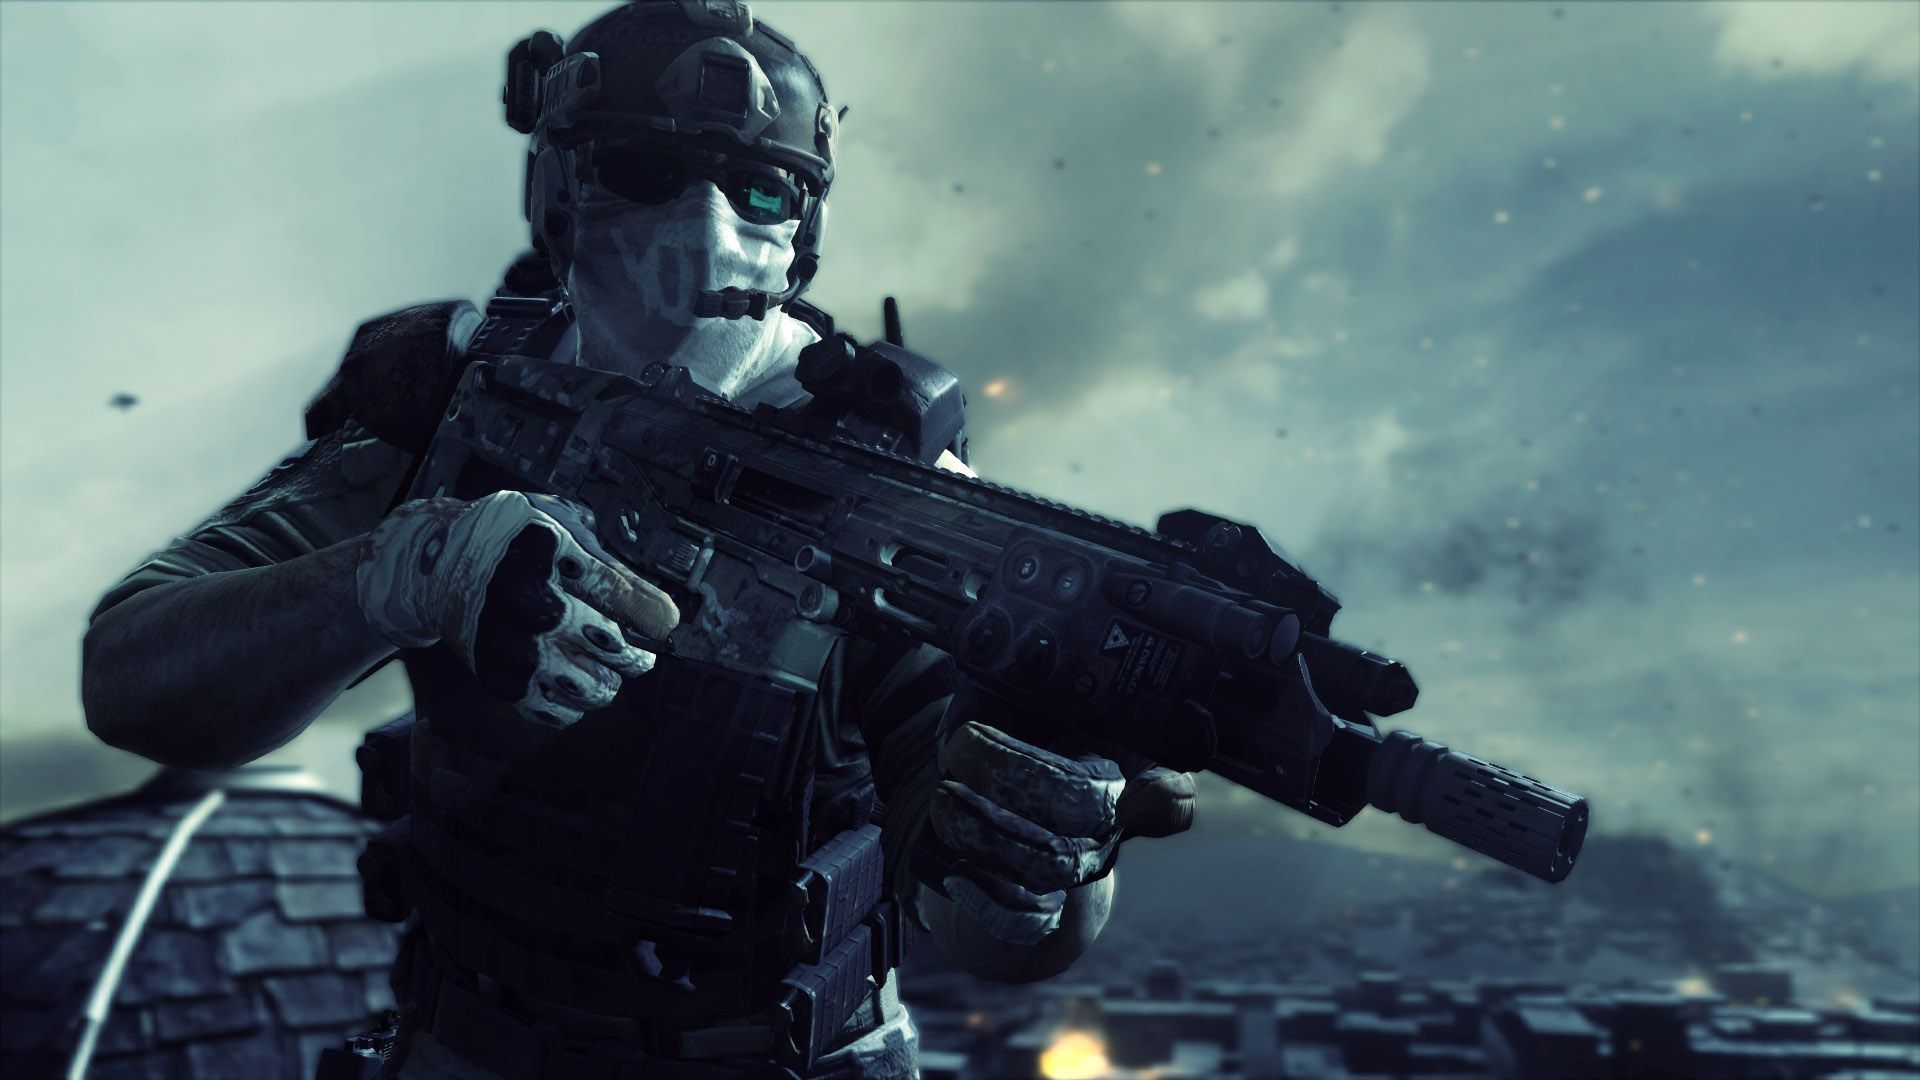 ghost recon images | Ghost Recon: Future Soldier review | PC Gamer ...